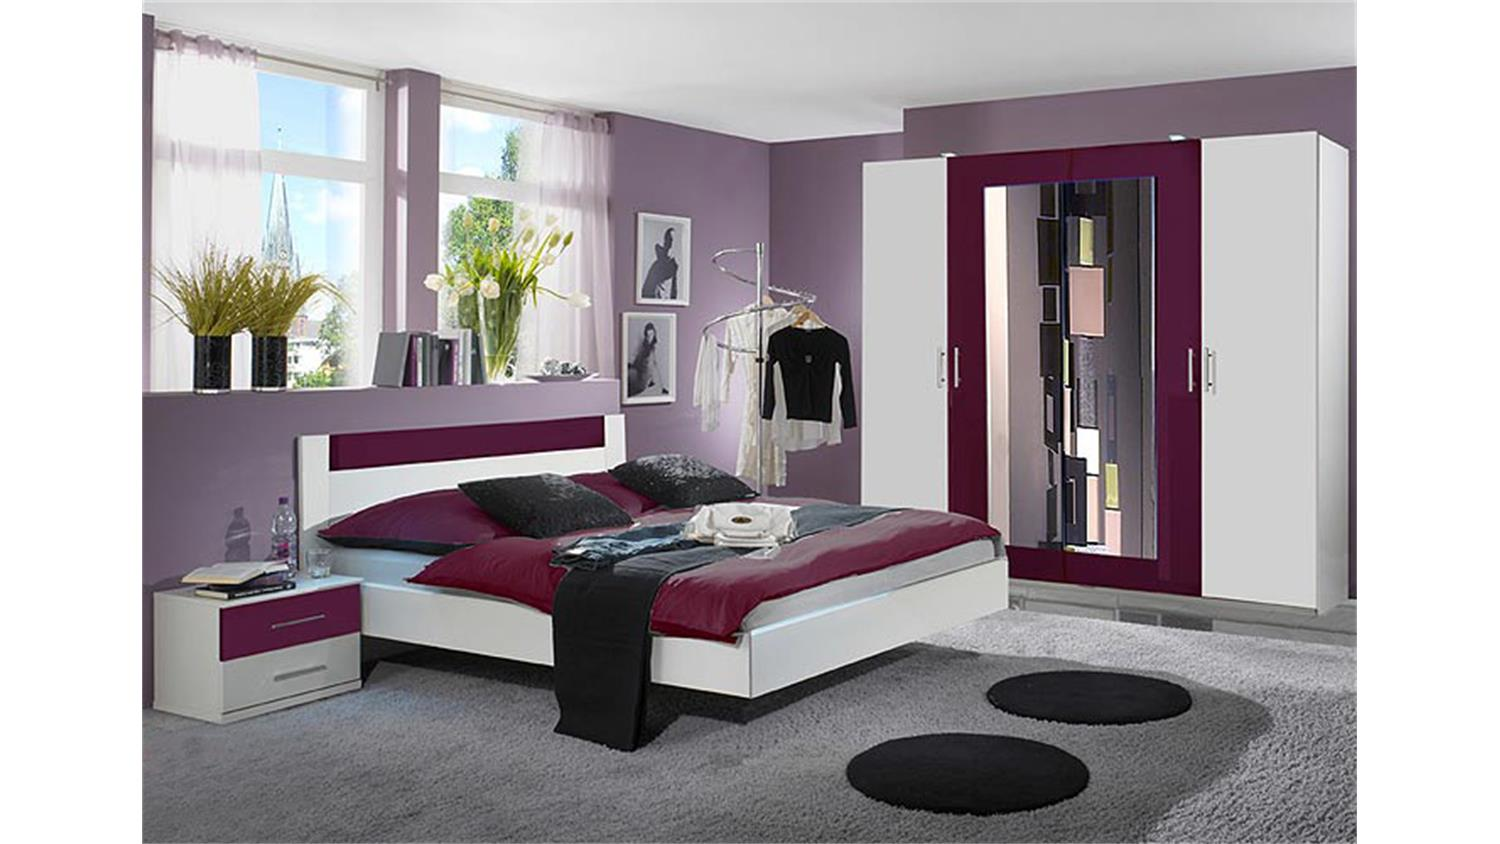 napoli schlafzimmer set vii in wei und brombeer. Black Bedroom Furniture Sets. Home Design Ideas